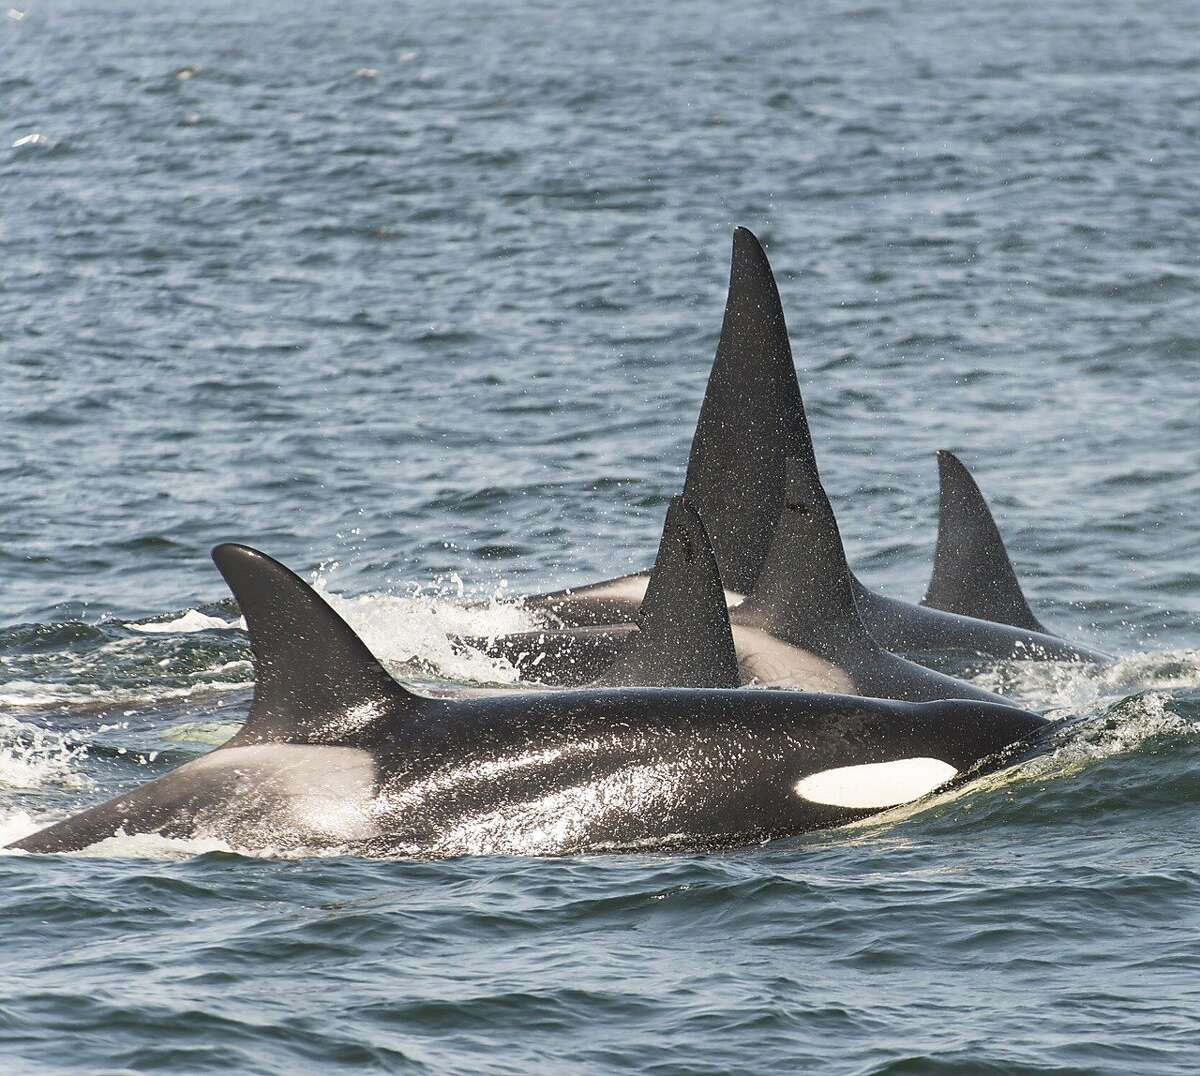 Pod of orcas attacked whales, trying to separate calf from mother,